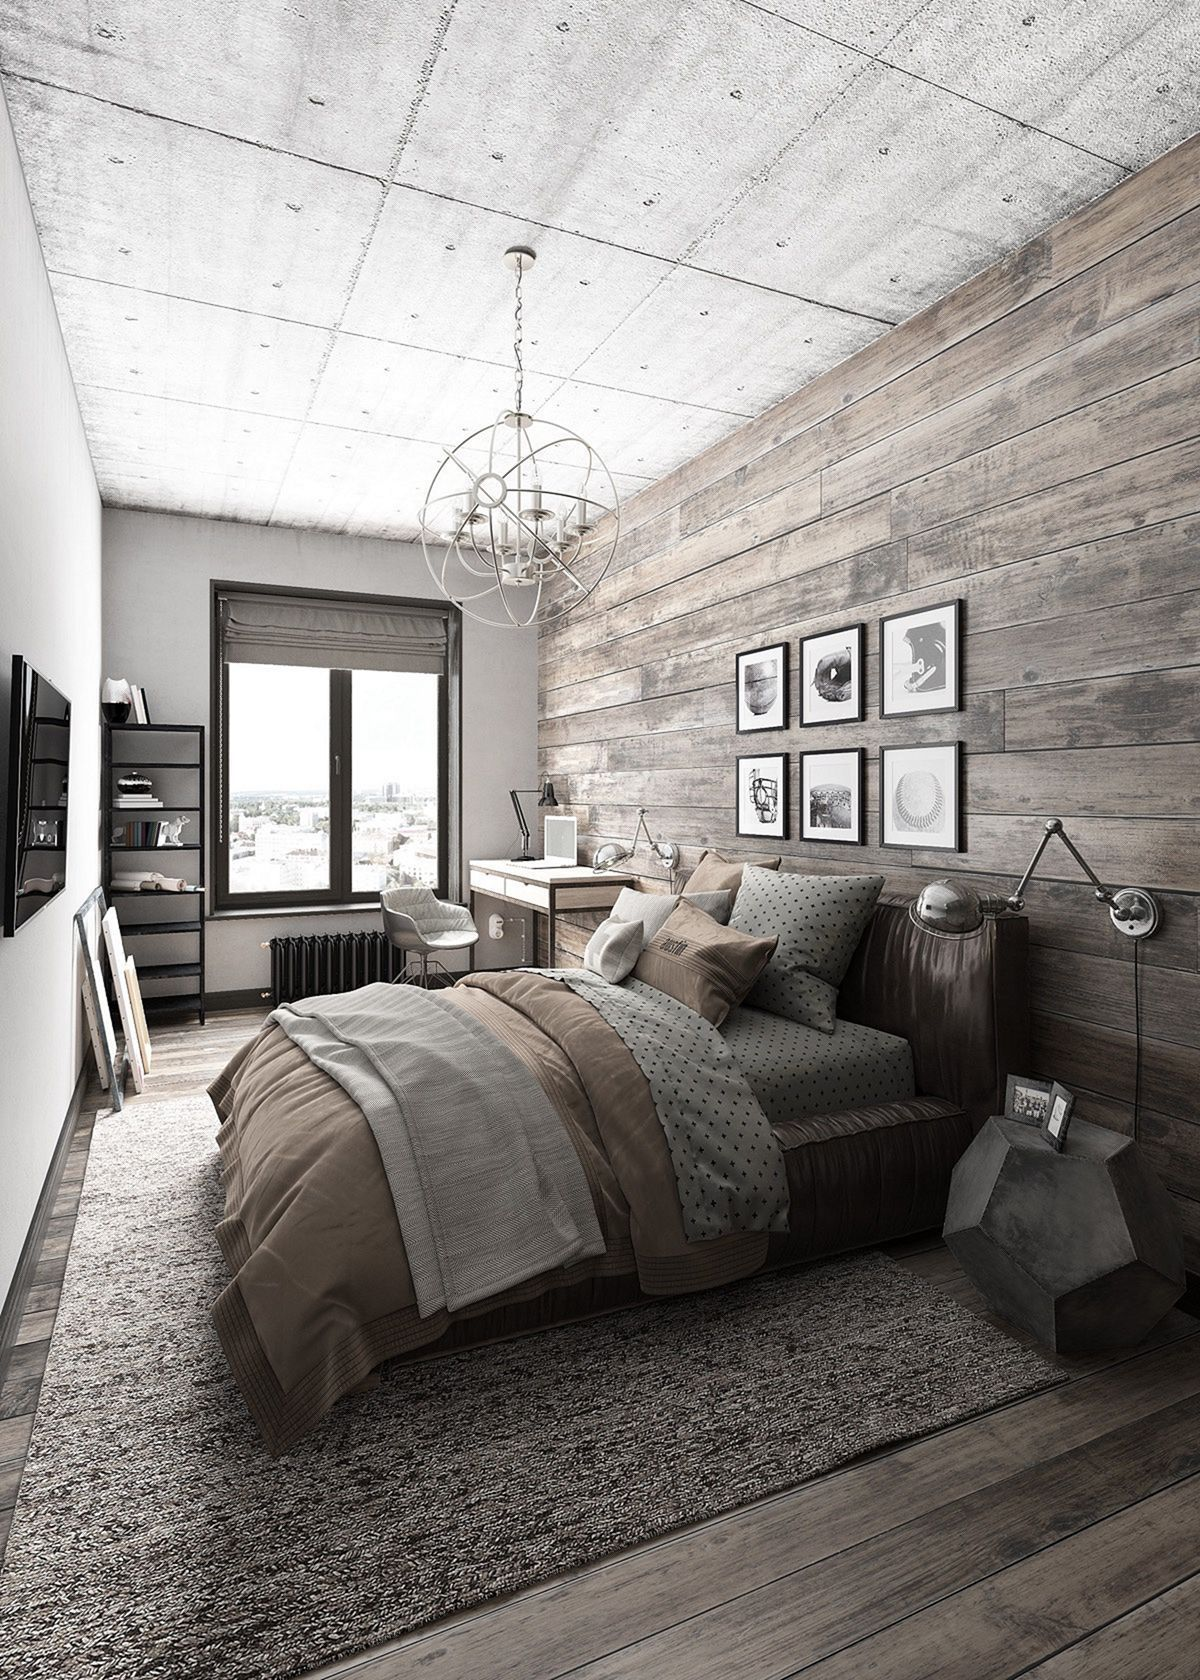 Awesome Industrial Bedroom Design Ideas For Unique Bedroom Style